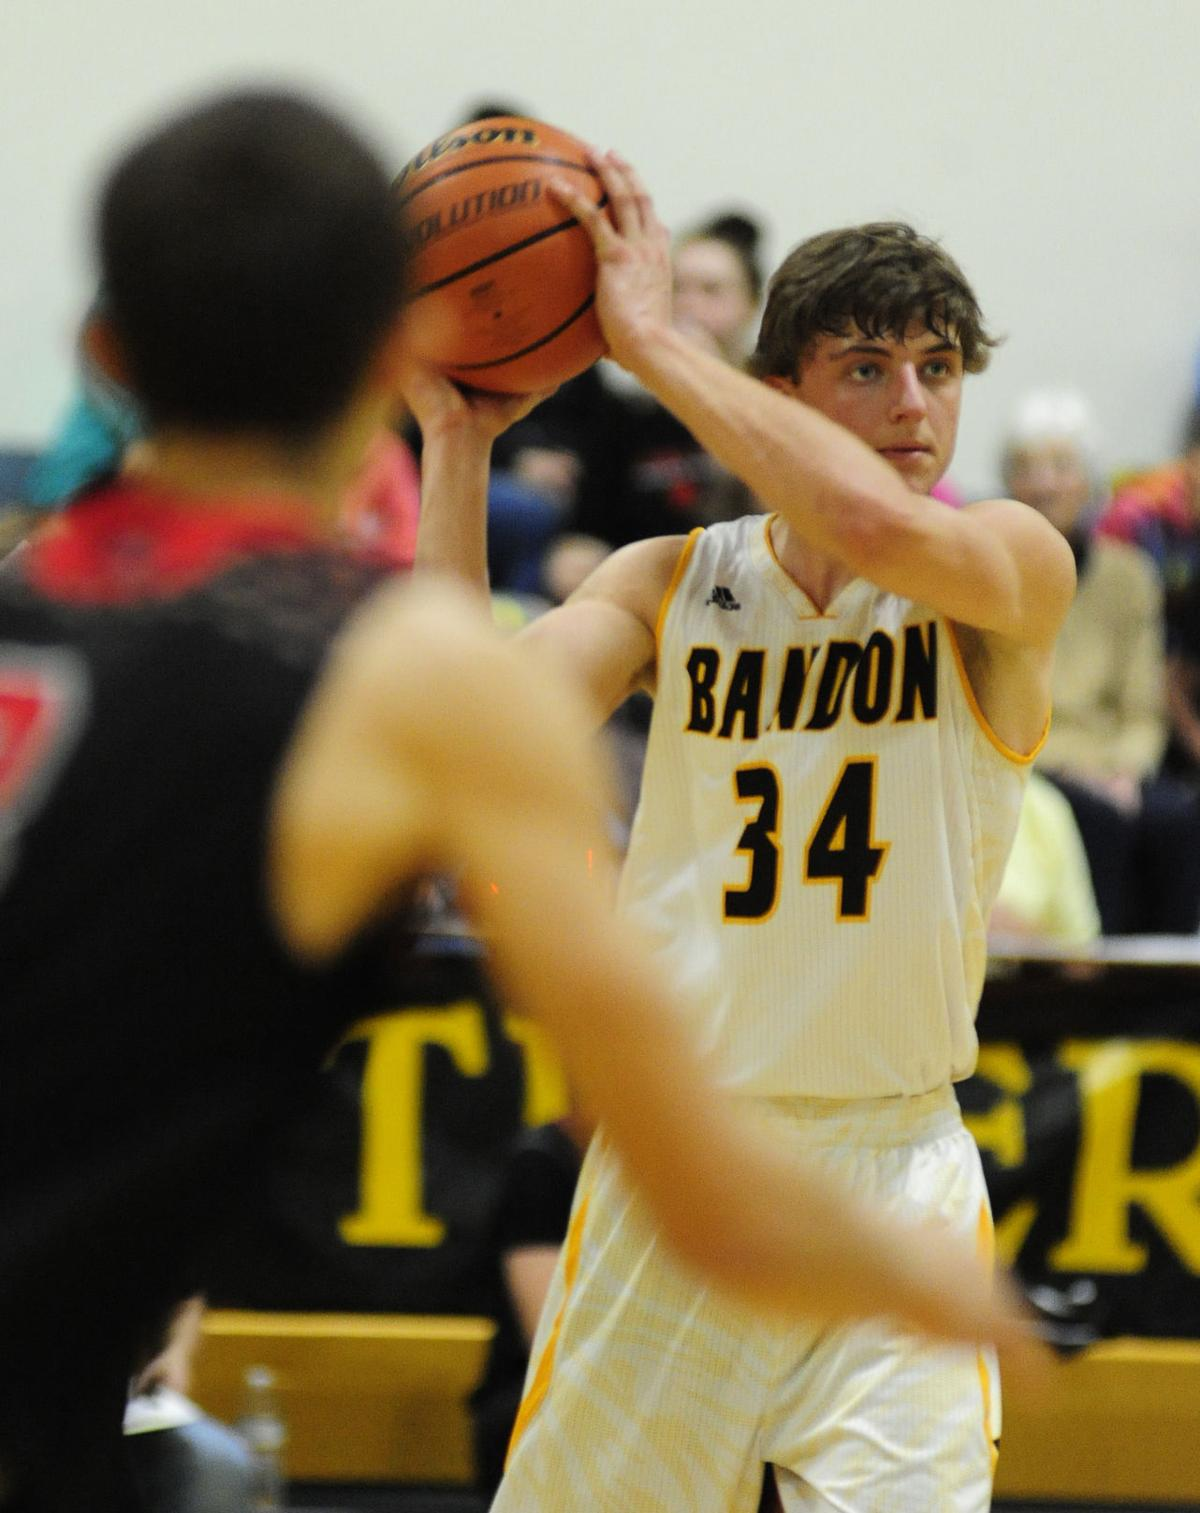 Bandon takes on Santiam at home